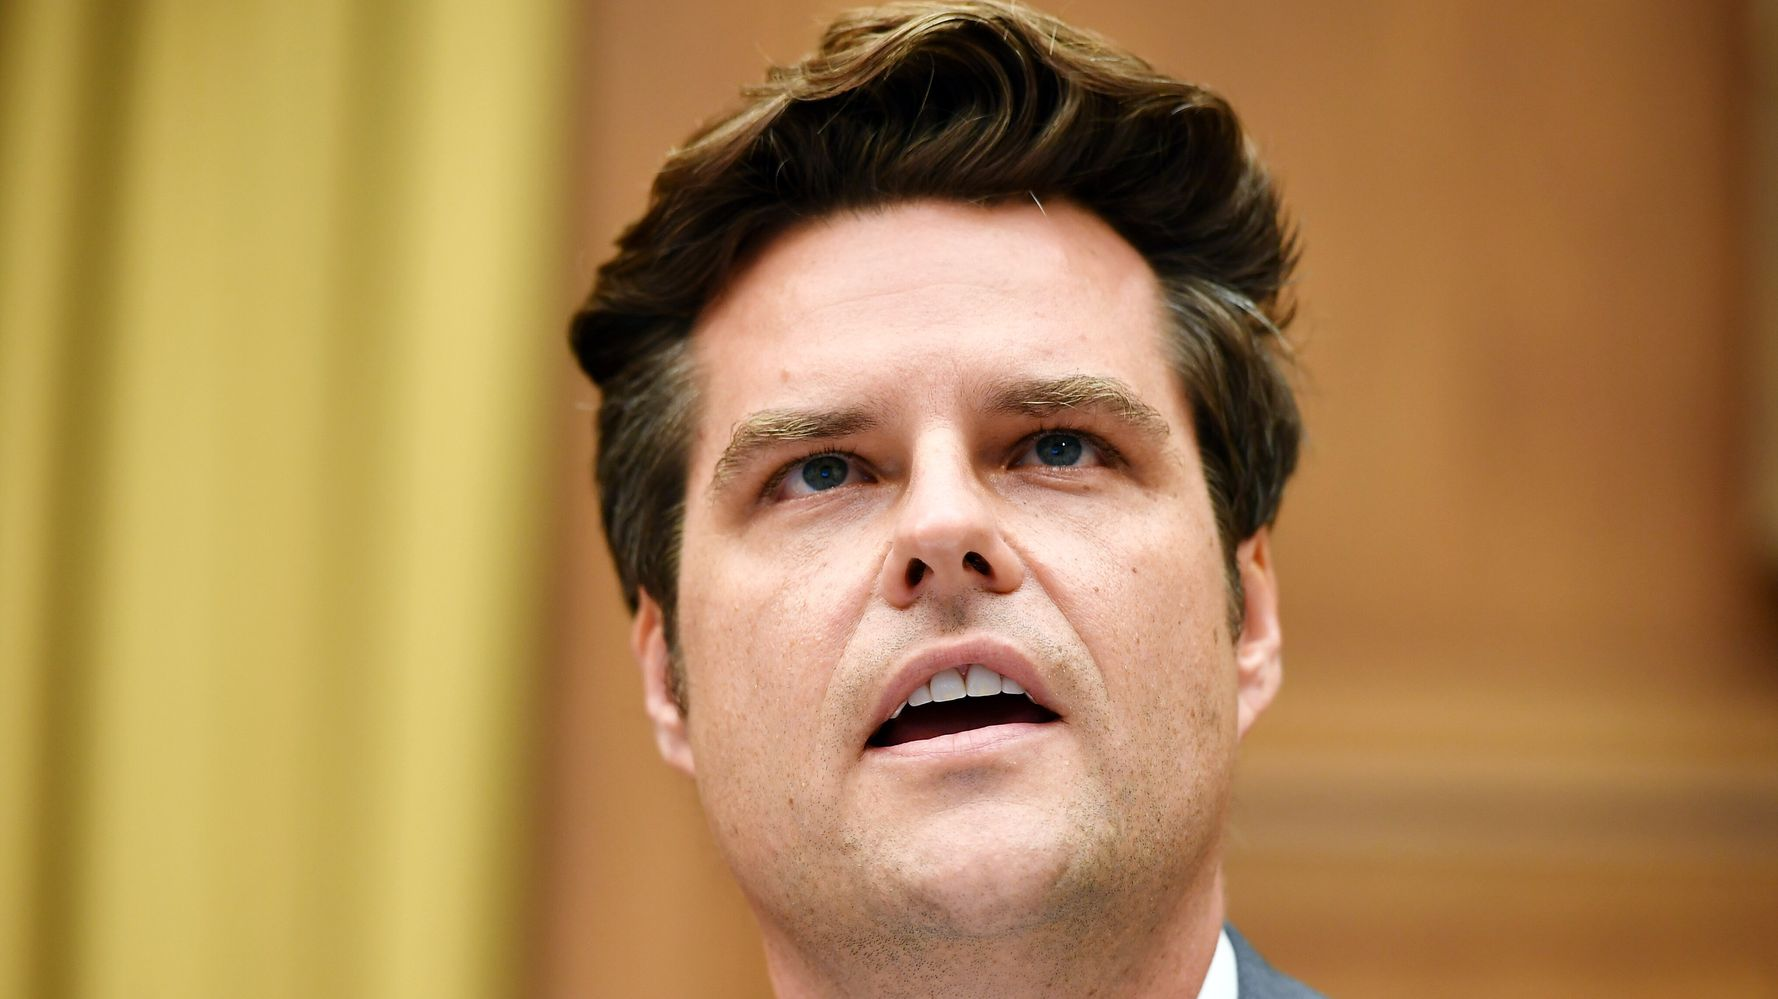 Rep. Matt Gaetz Receives Hard-To-Miss Message In The Sky After Pal's Sex Trafficking Plea